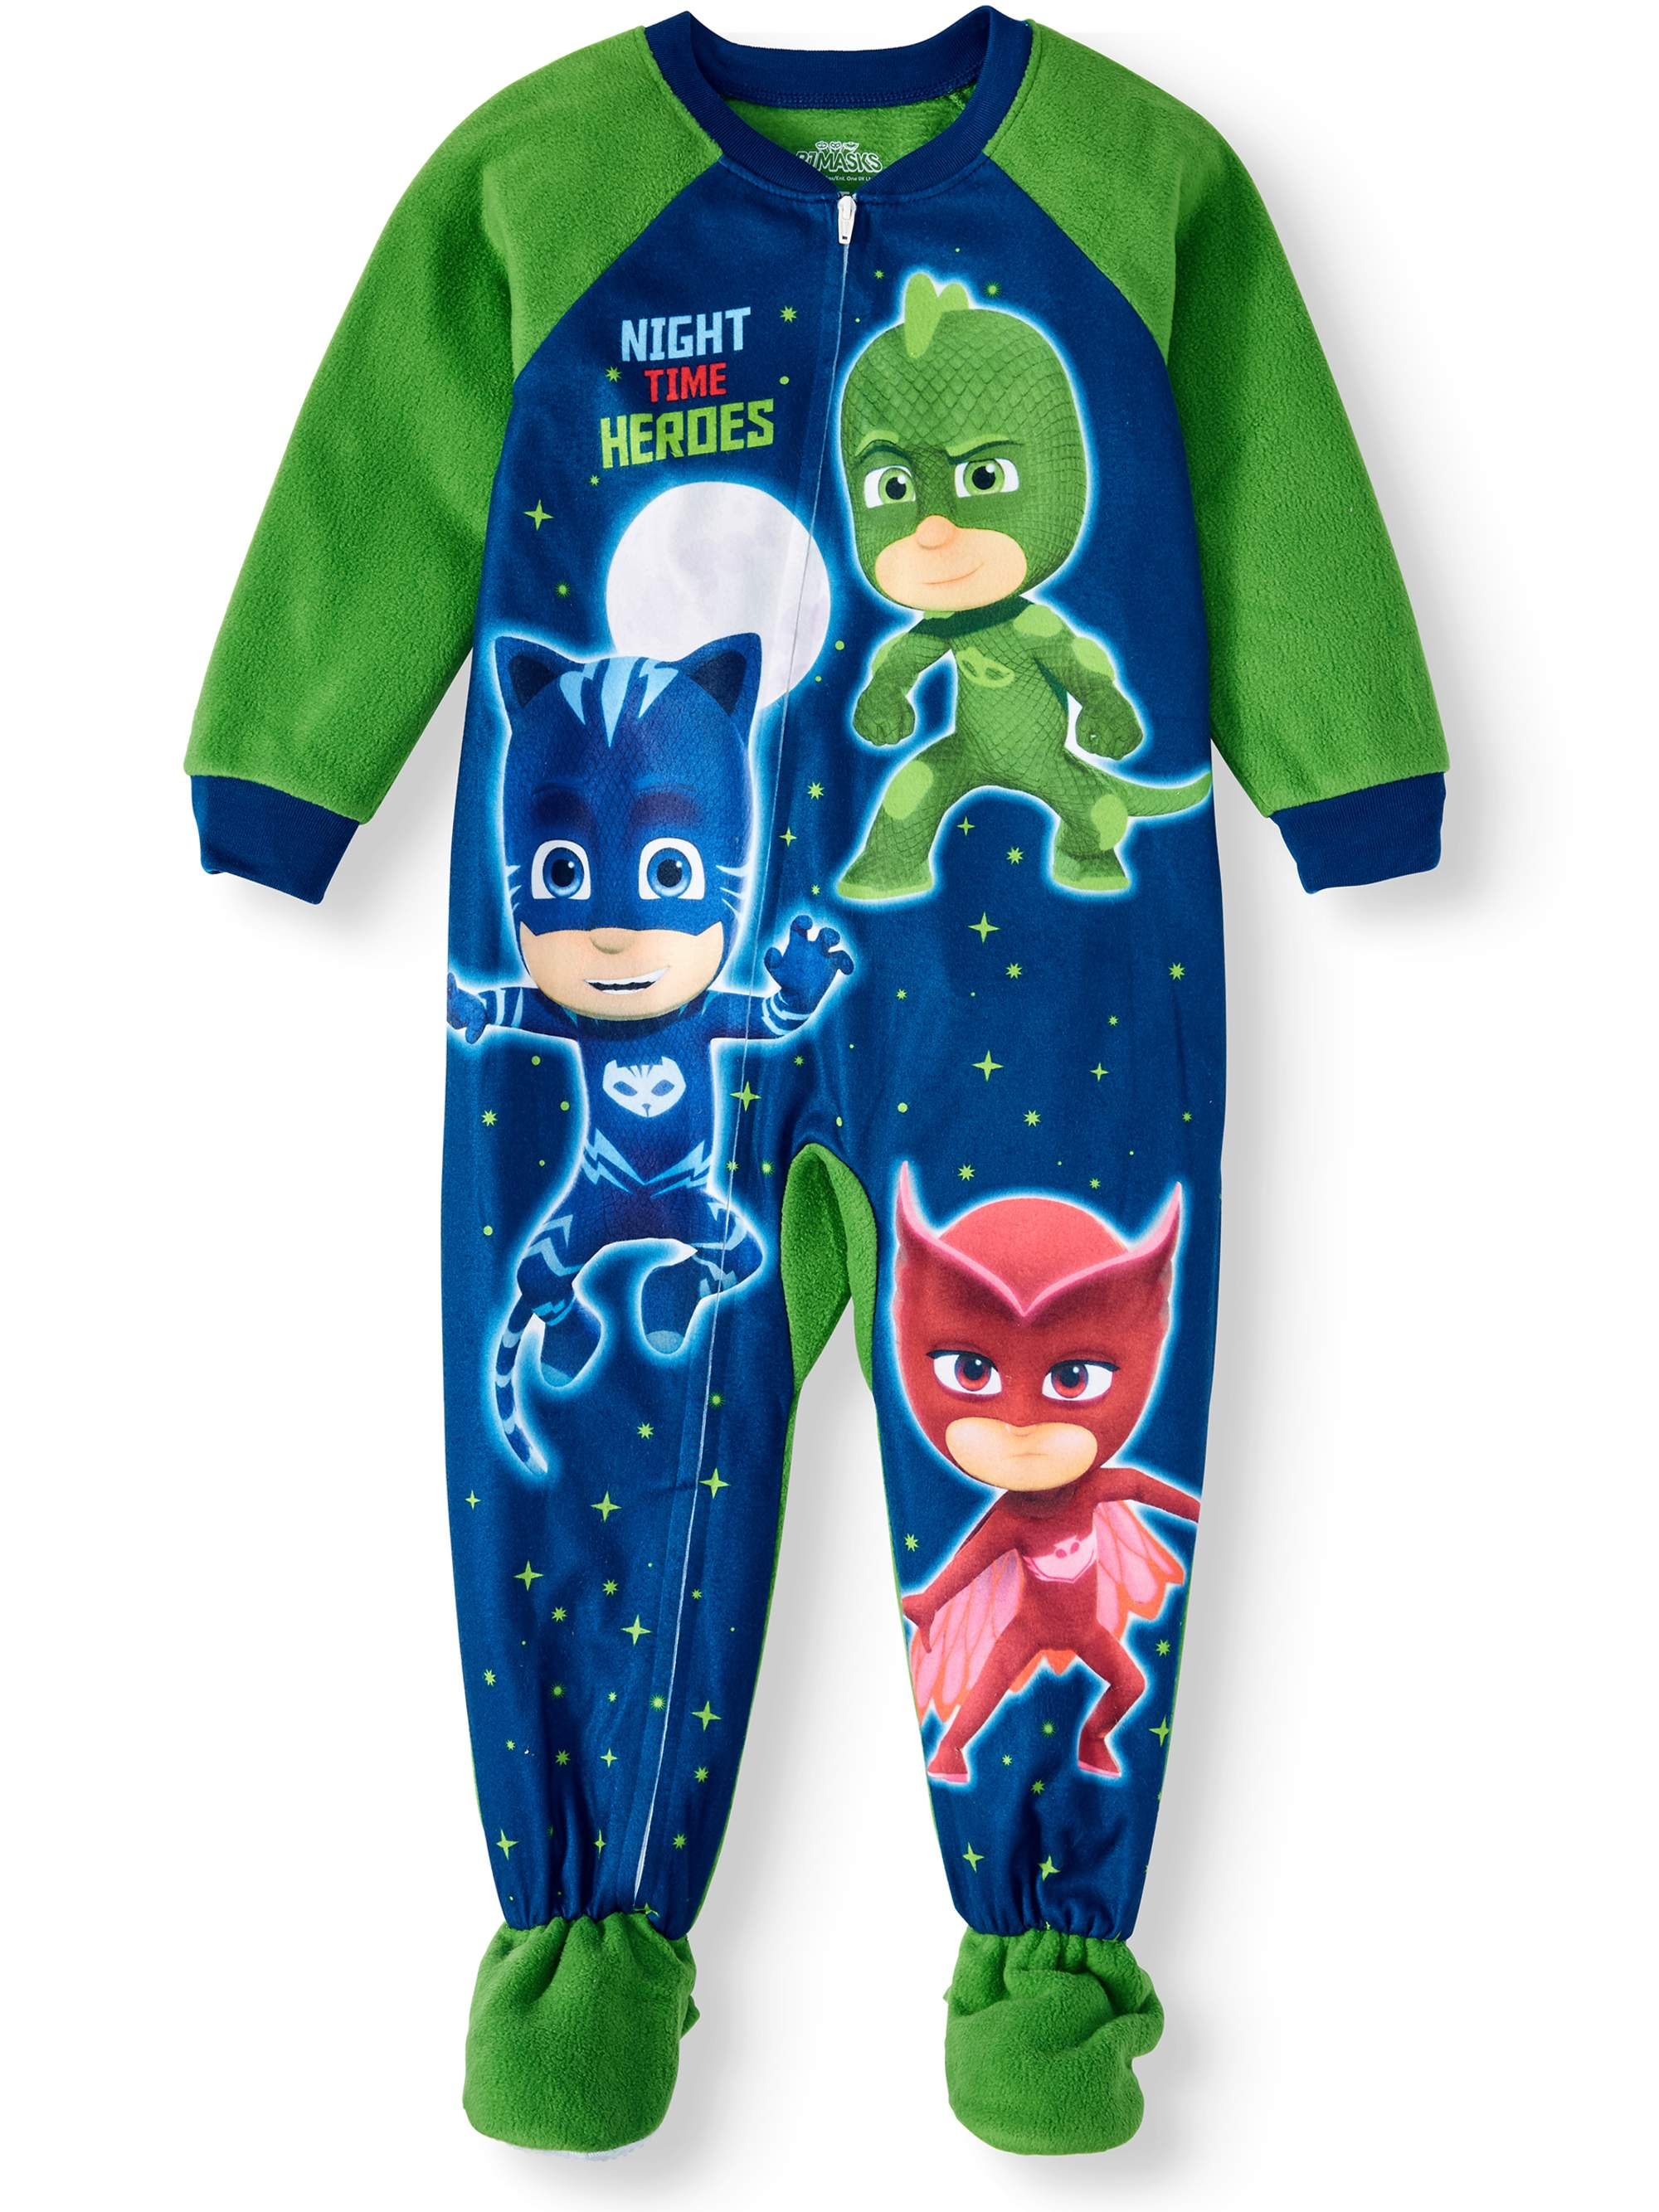 New PJ Masks Toddler Boys 2T 3T 4T 5T pajamas boys PJ Masks pajamas